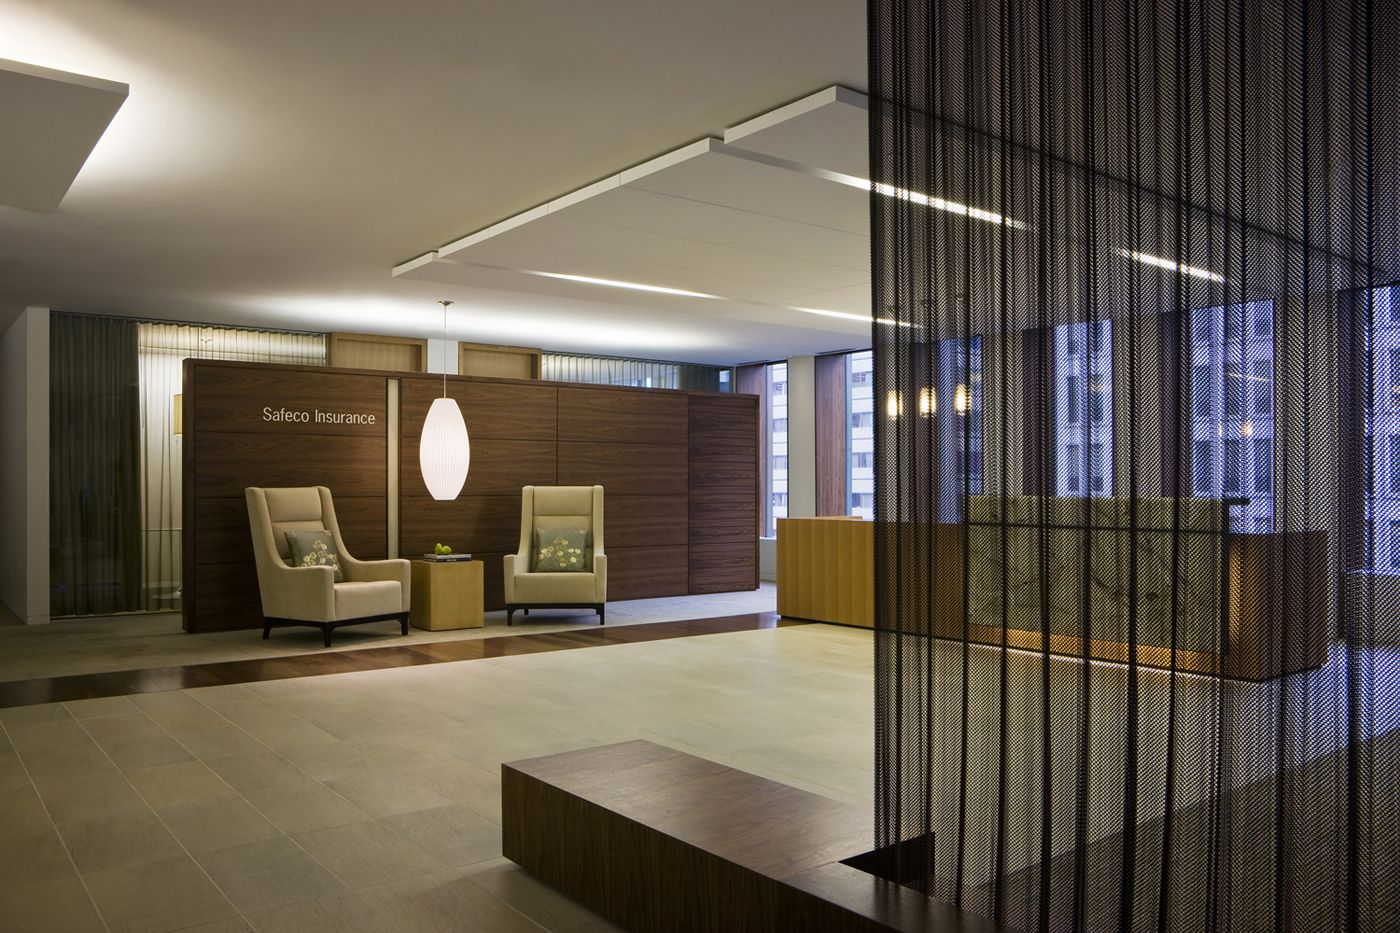 Corporate office interior design ideas interior design for Corporate office decorating ideas